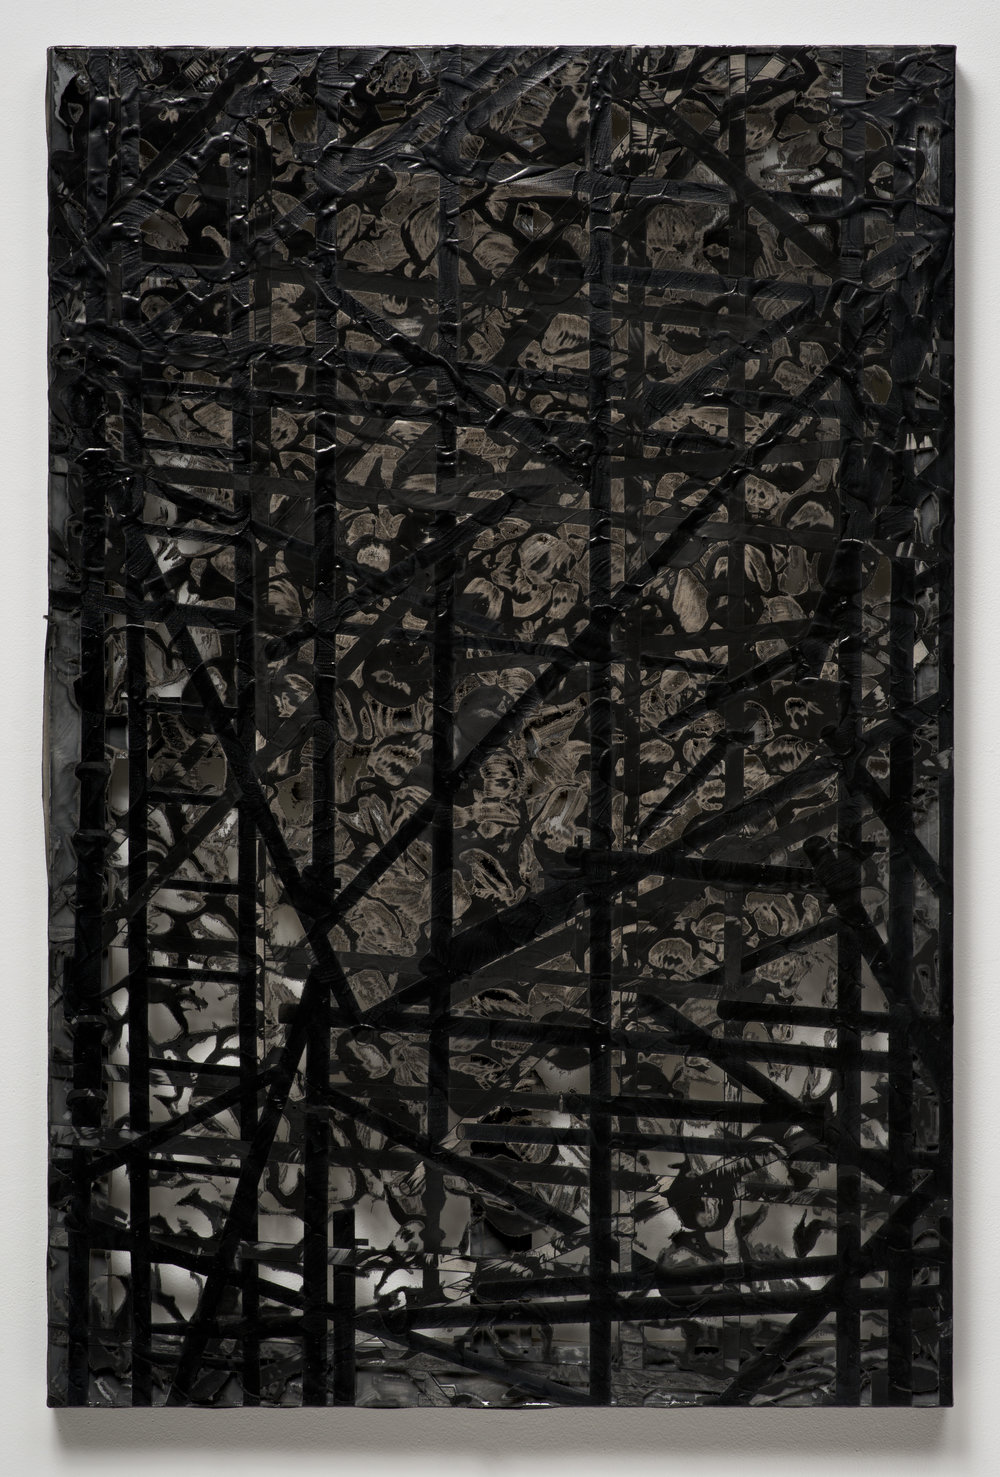 Erosion (Scaffolding), 2012 laser sculpted acrylic paint on canvas 117,5 x 78 x 6,4 cm - 46 1/4 x 30 3/4 x 2 1/2 inches